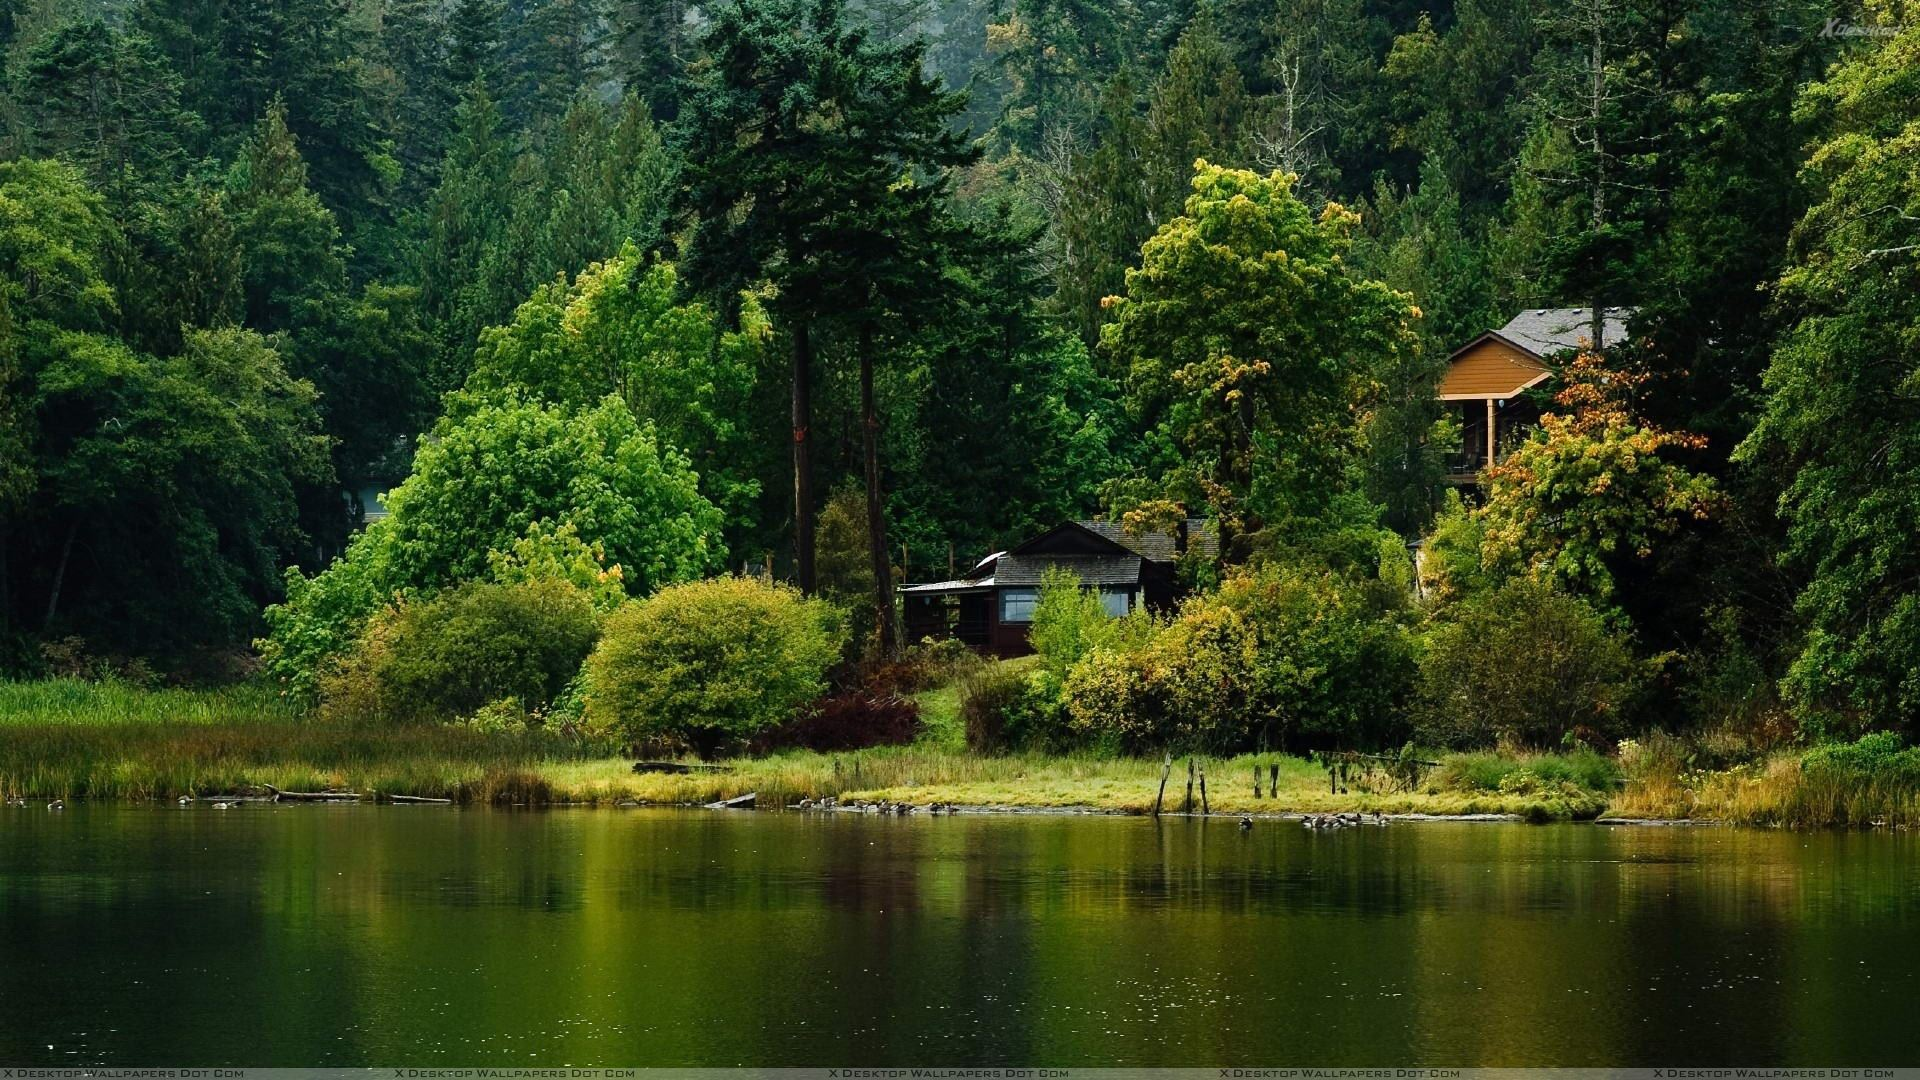 Hut In Greenery And Near River Wallpaper